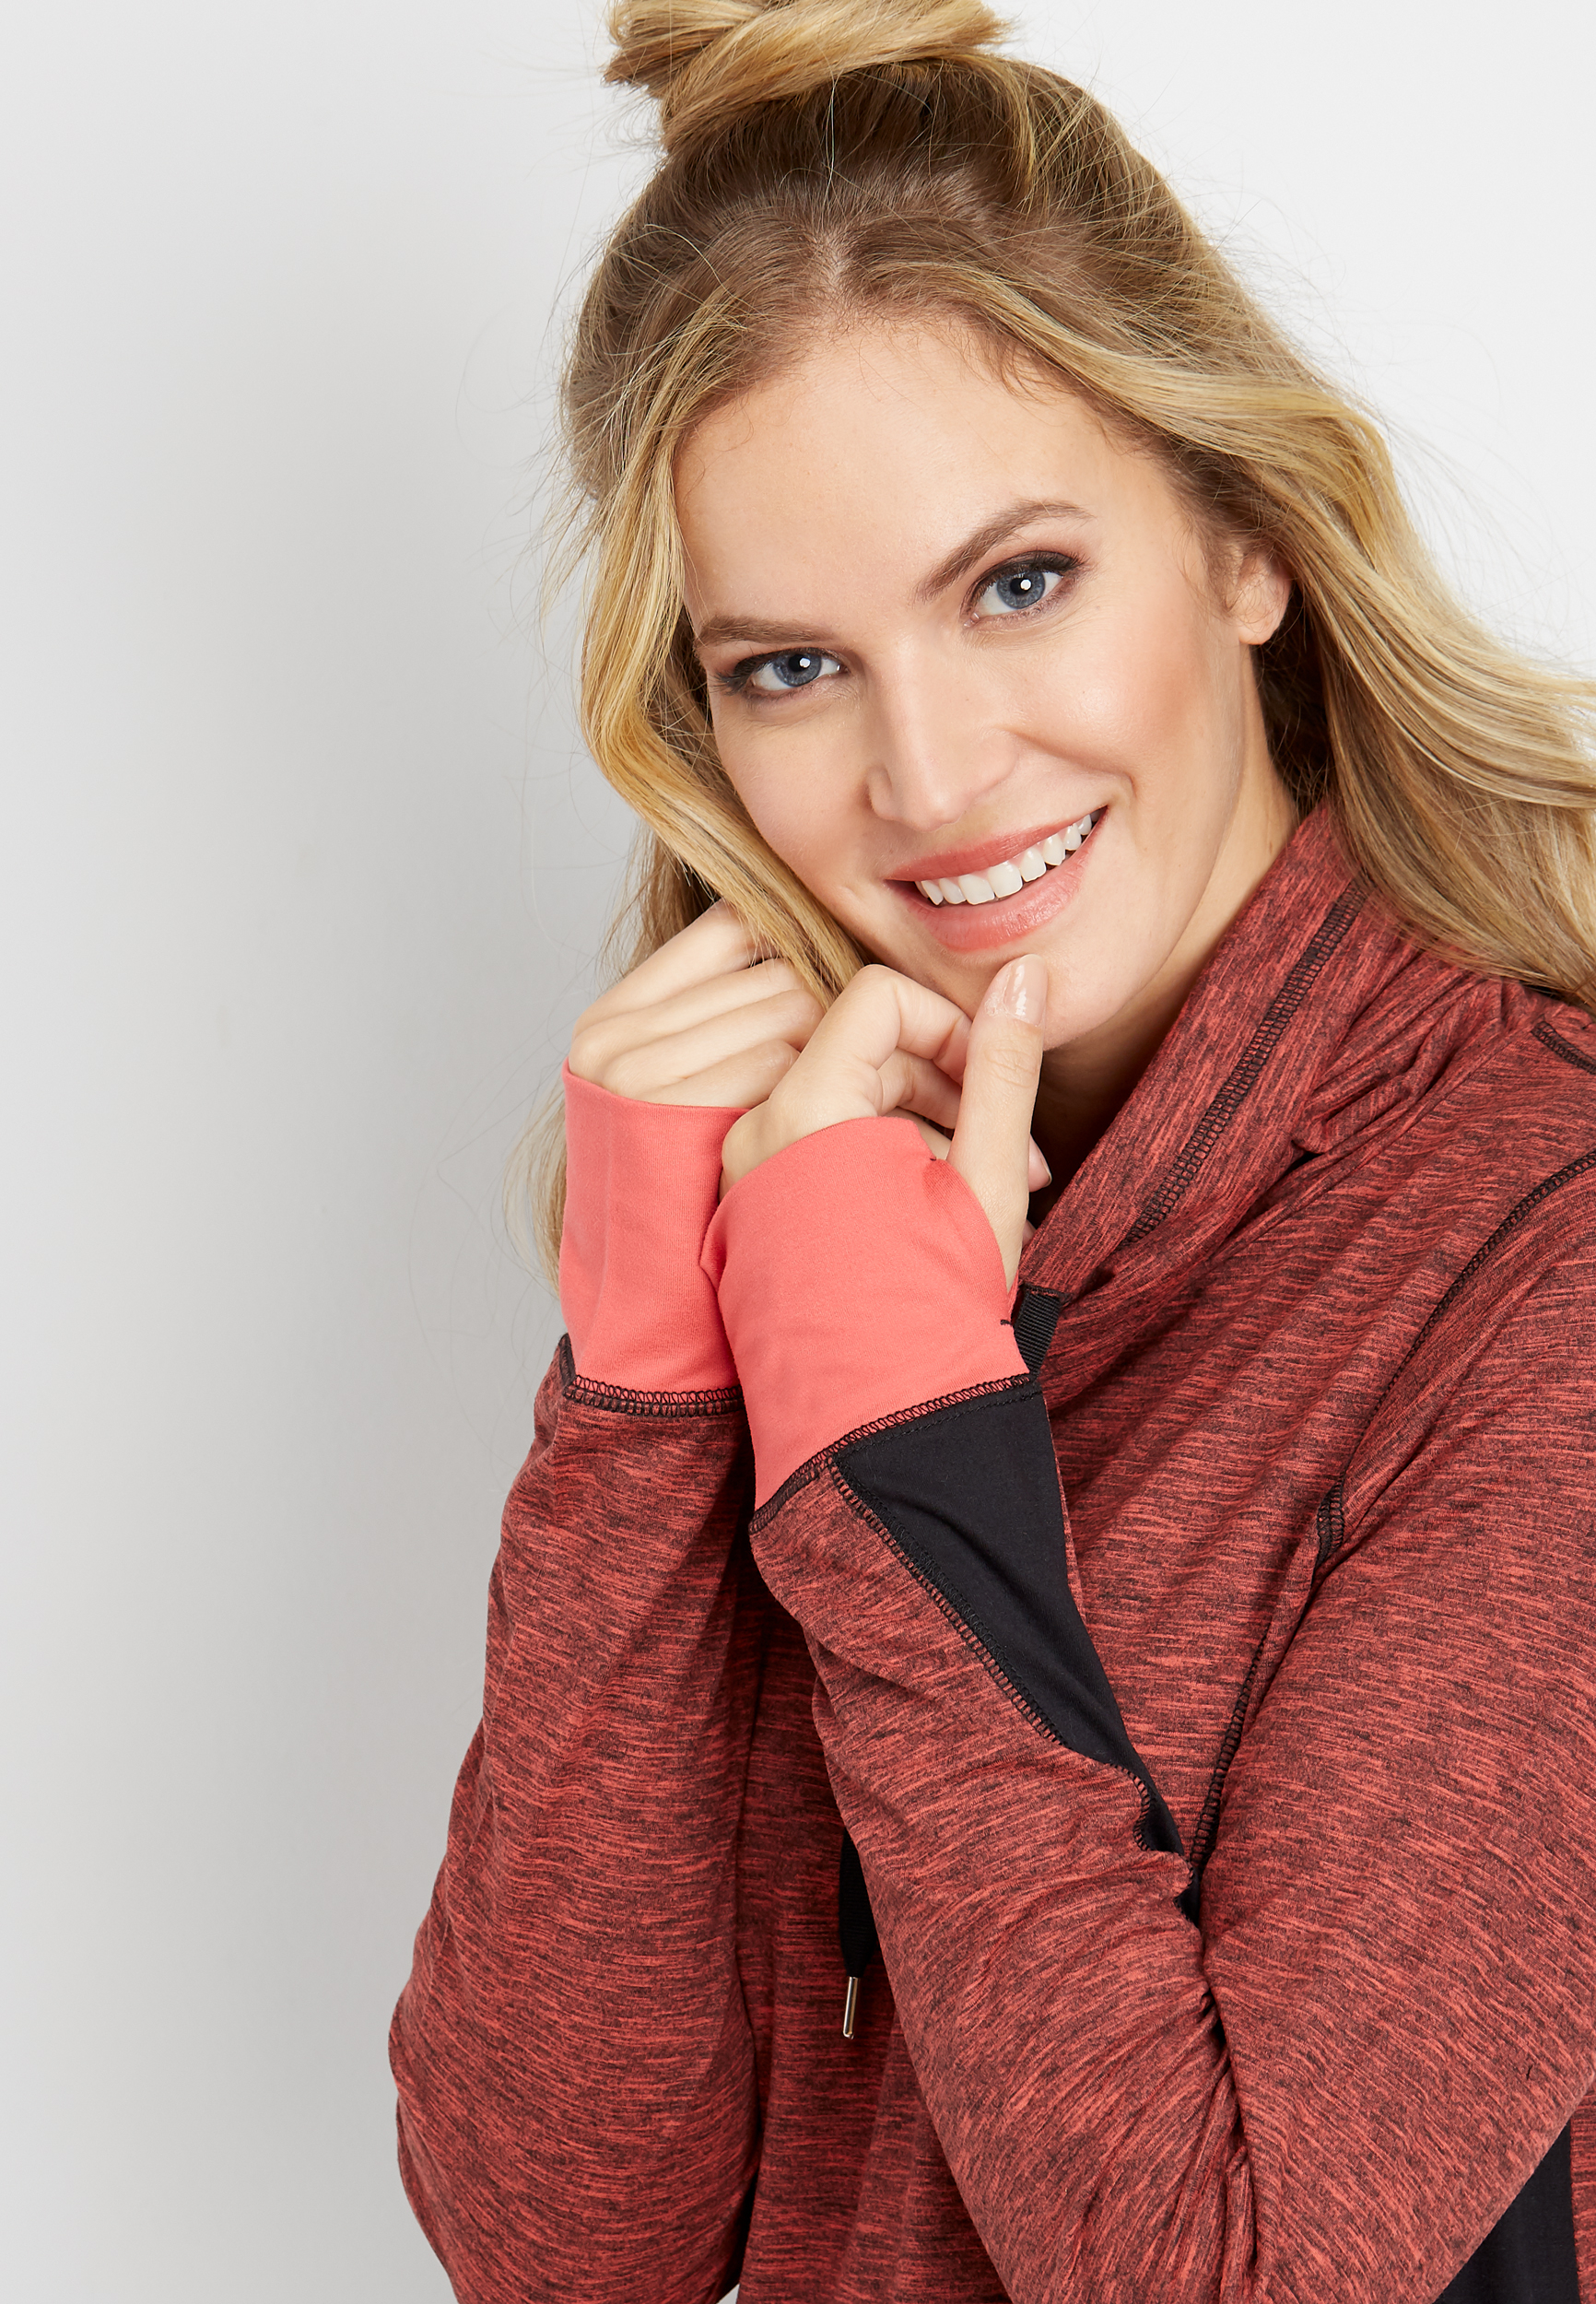 High Low Hem Cowl Neck Pullover Sweatshirt by Maurices